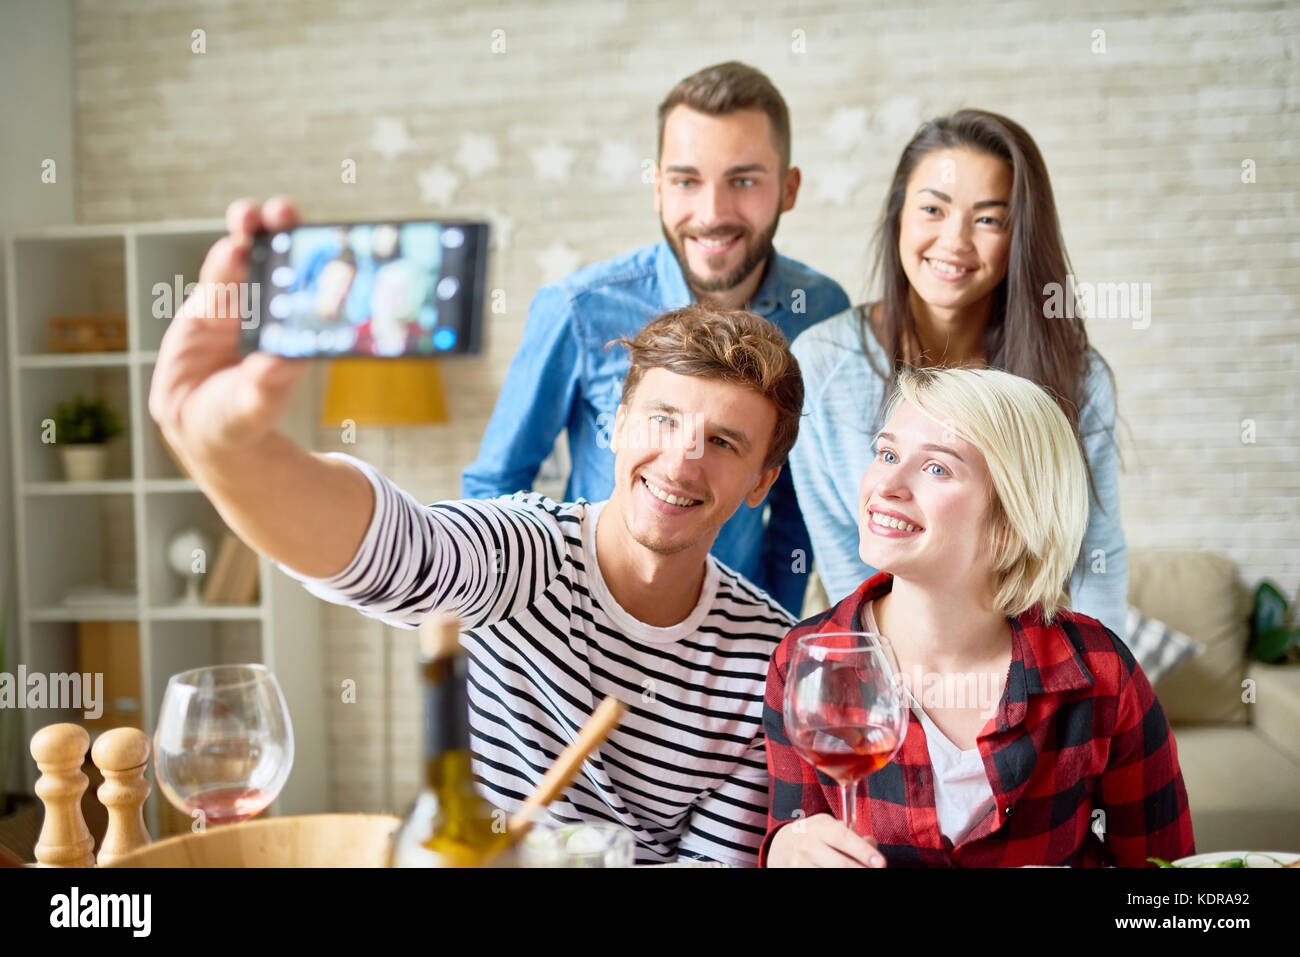 Happy Young People Posing for Selfie - Stock Image